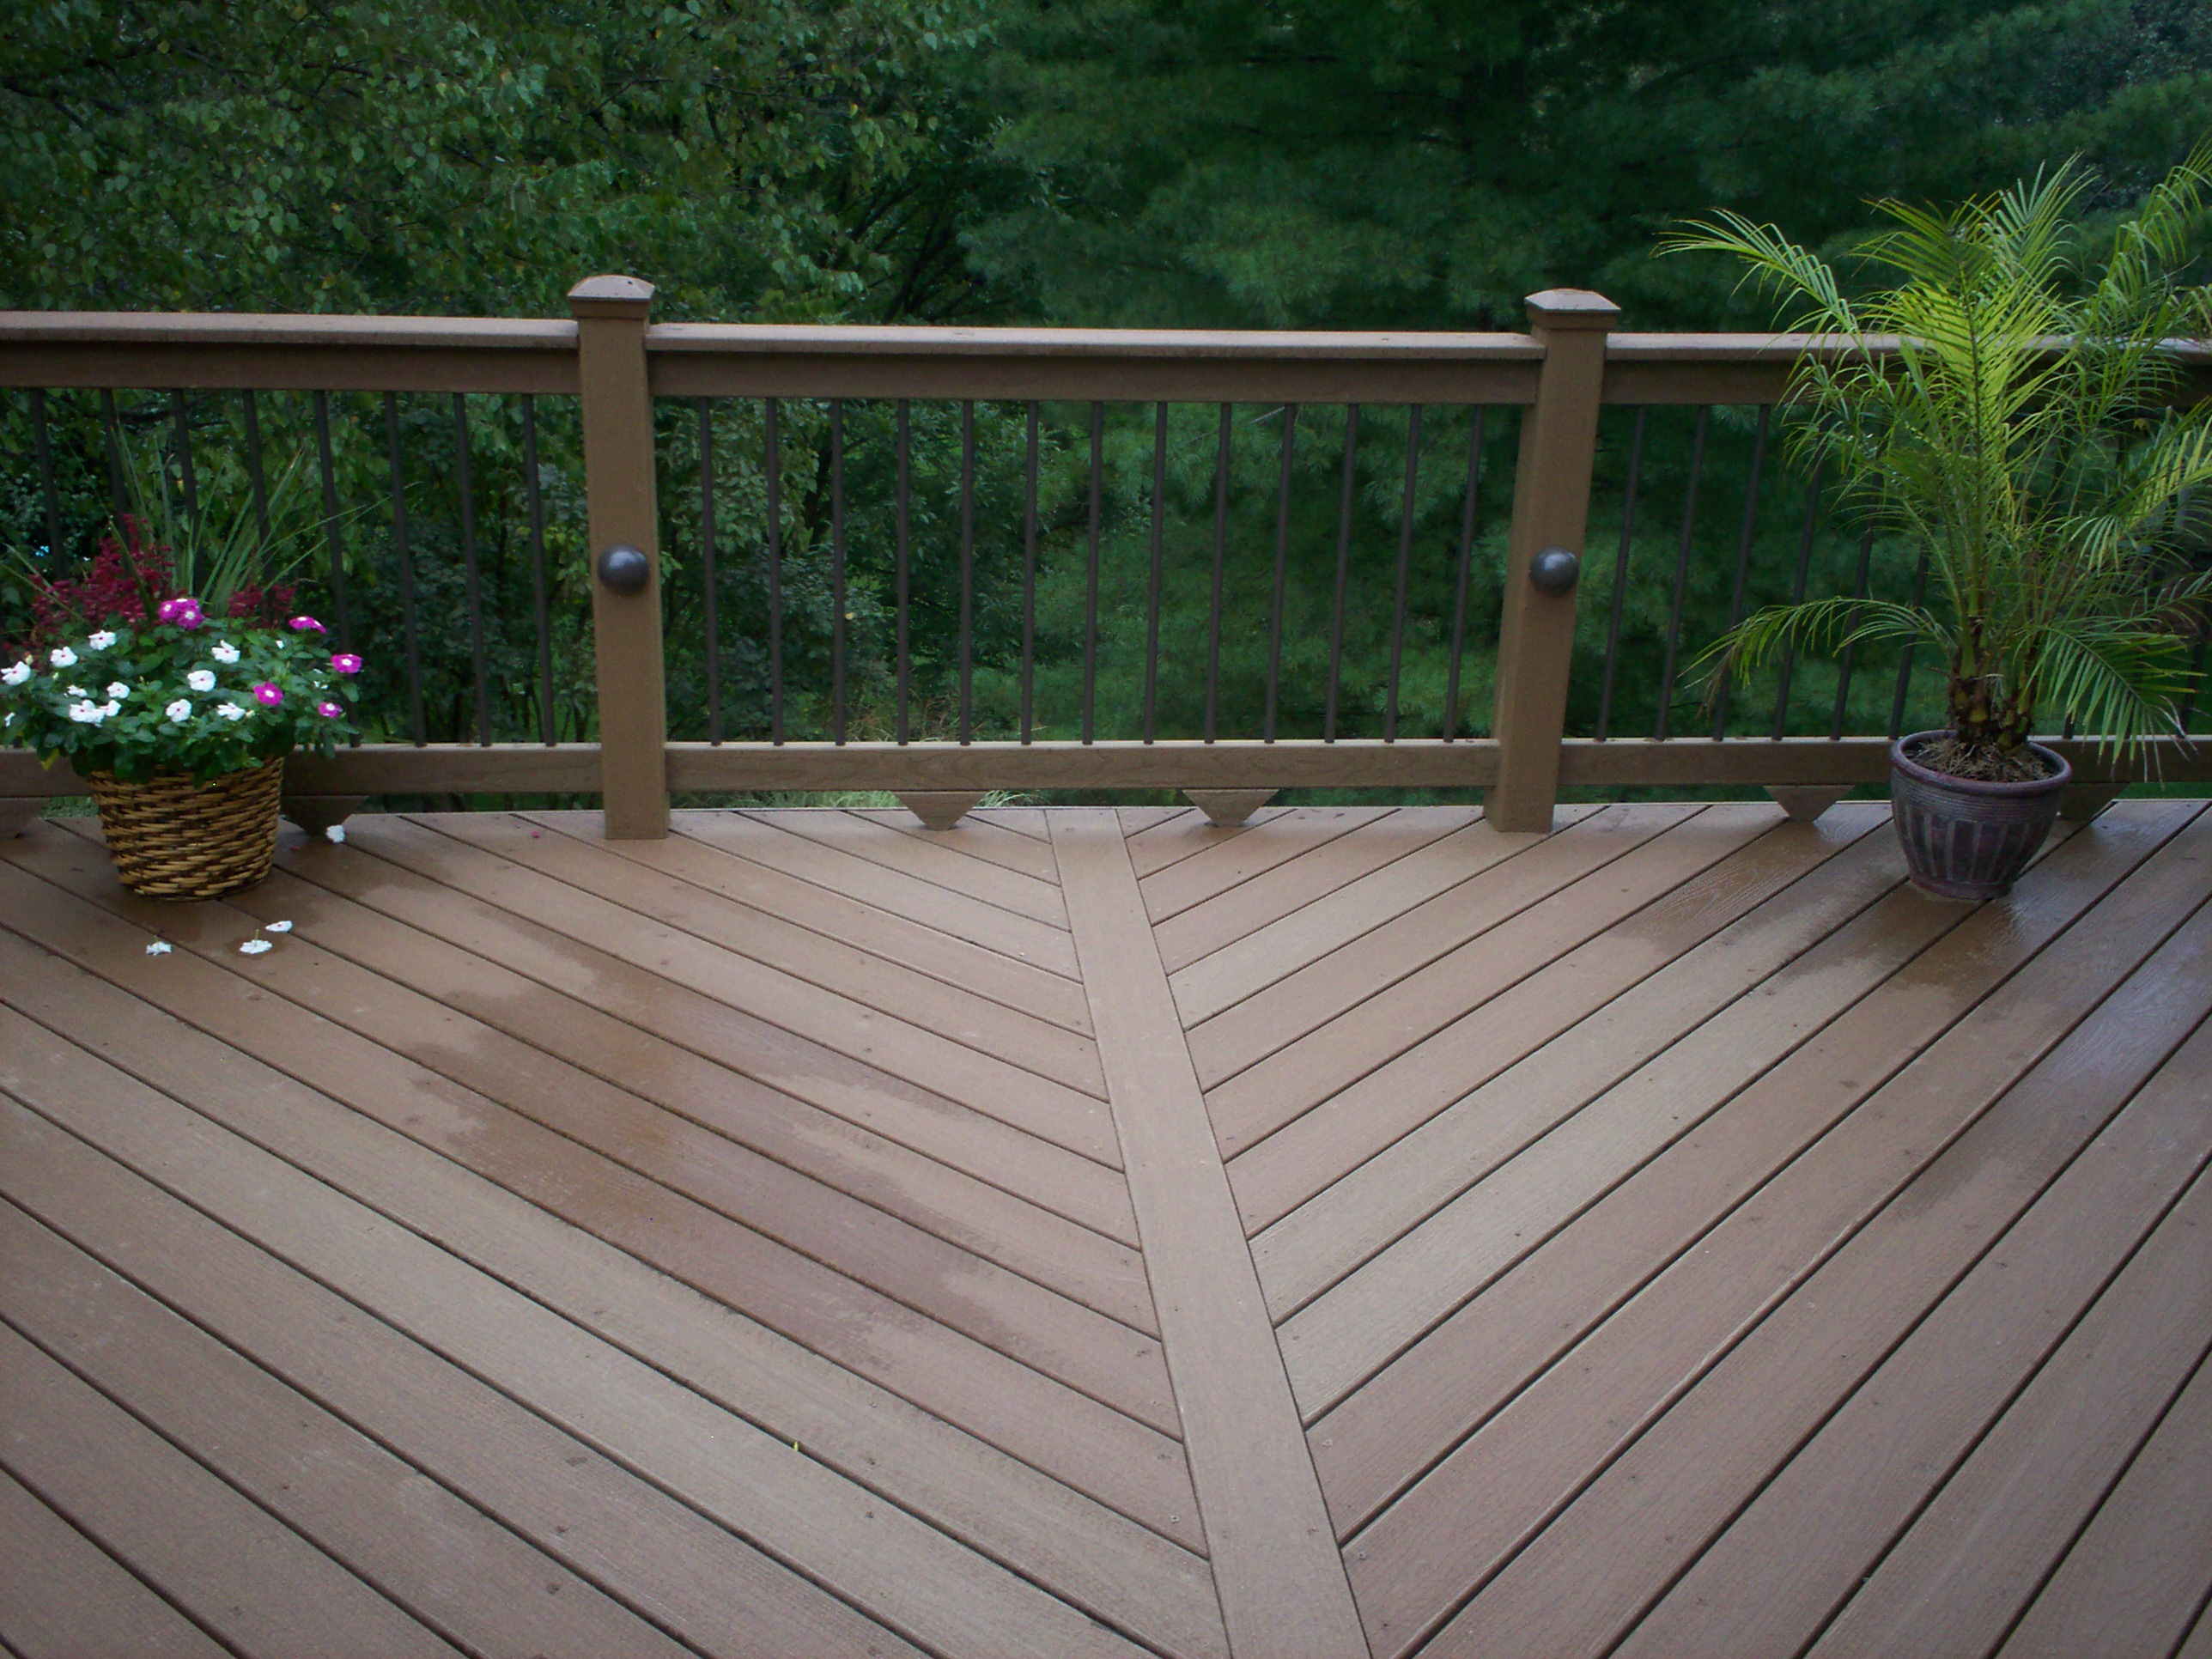 St louis deck designs with floor board patterns st Deck design ideas